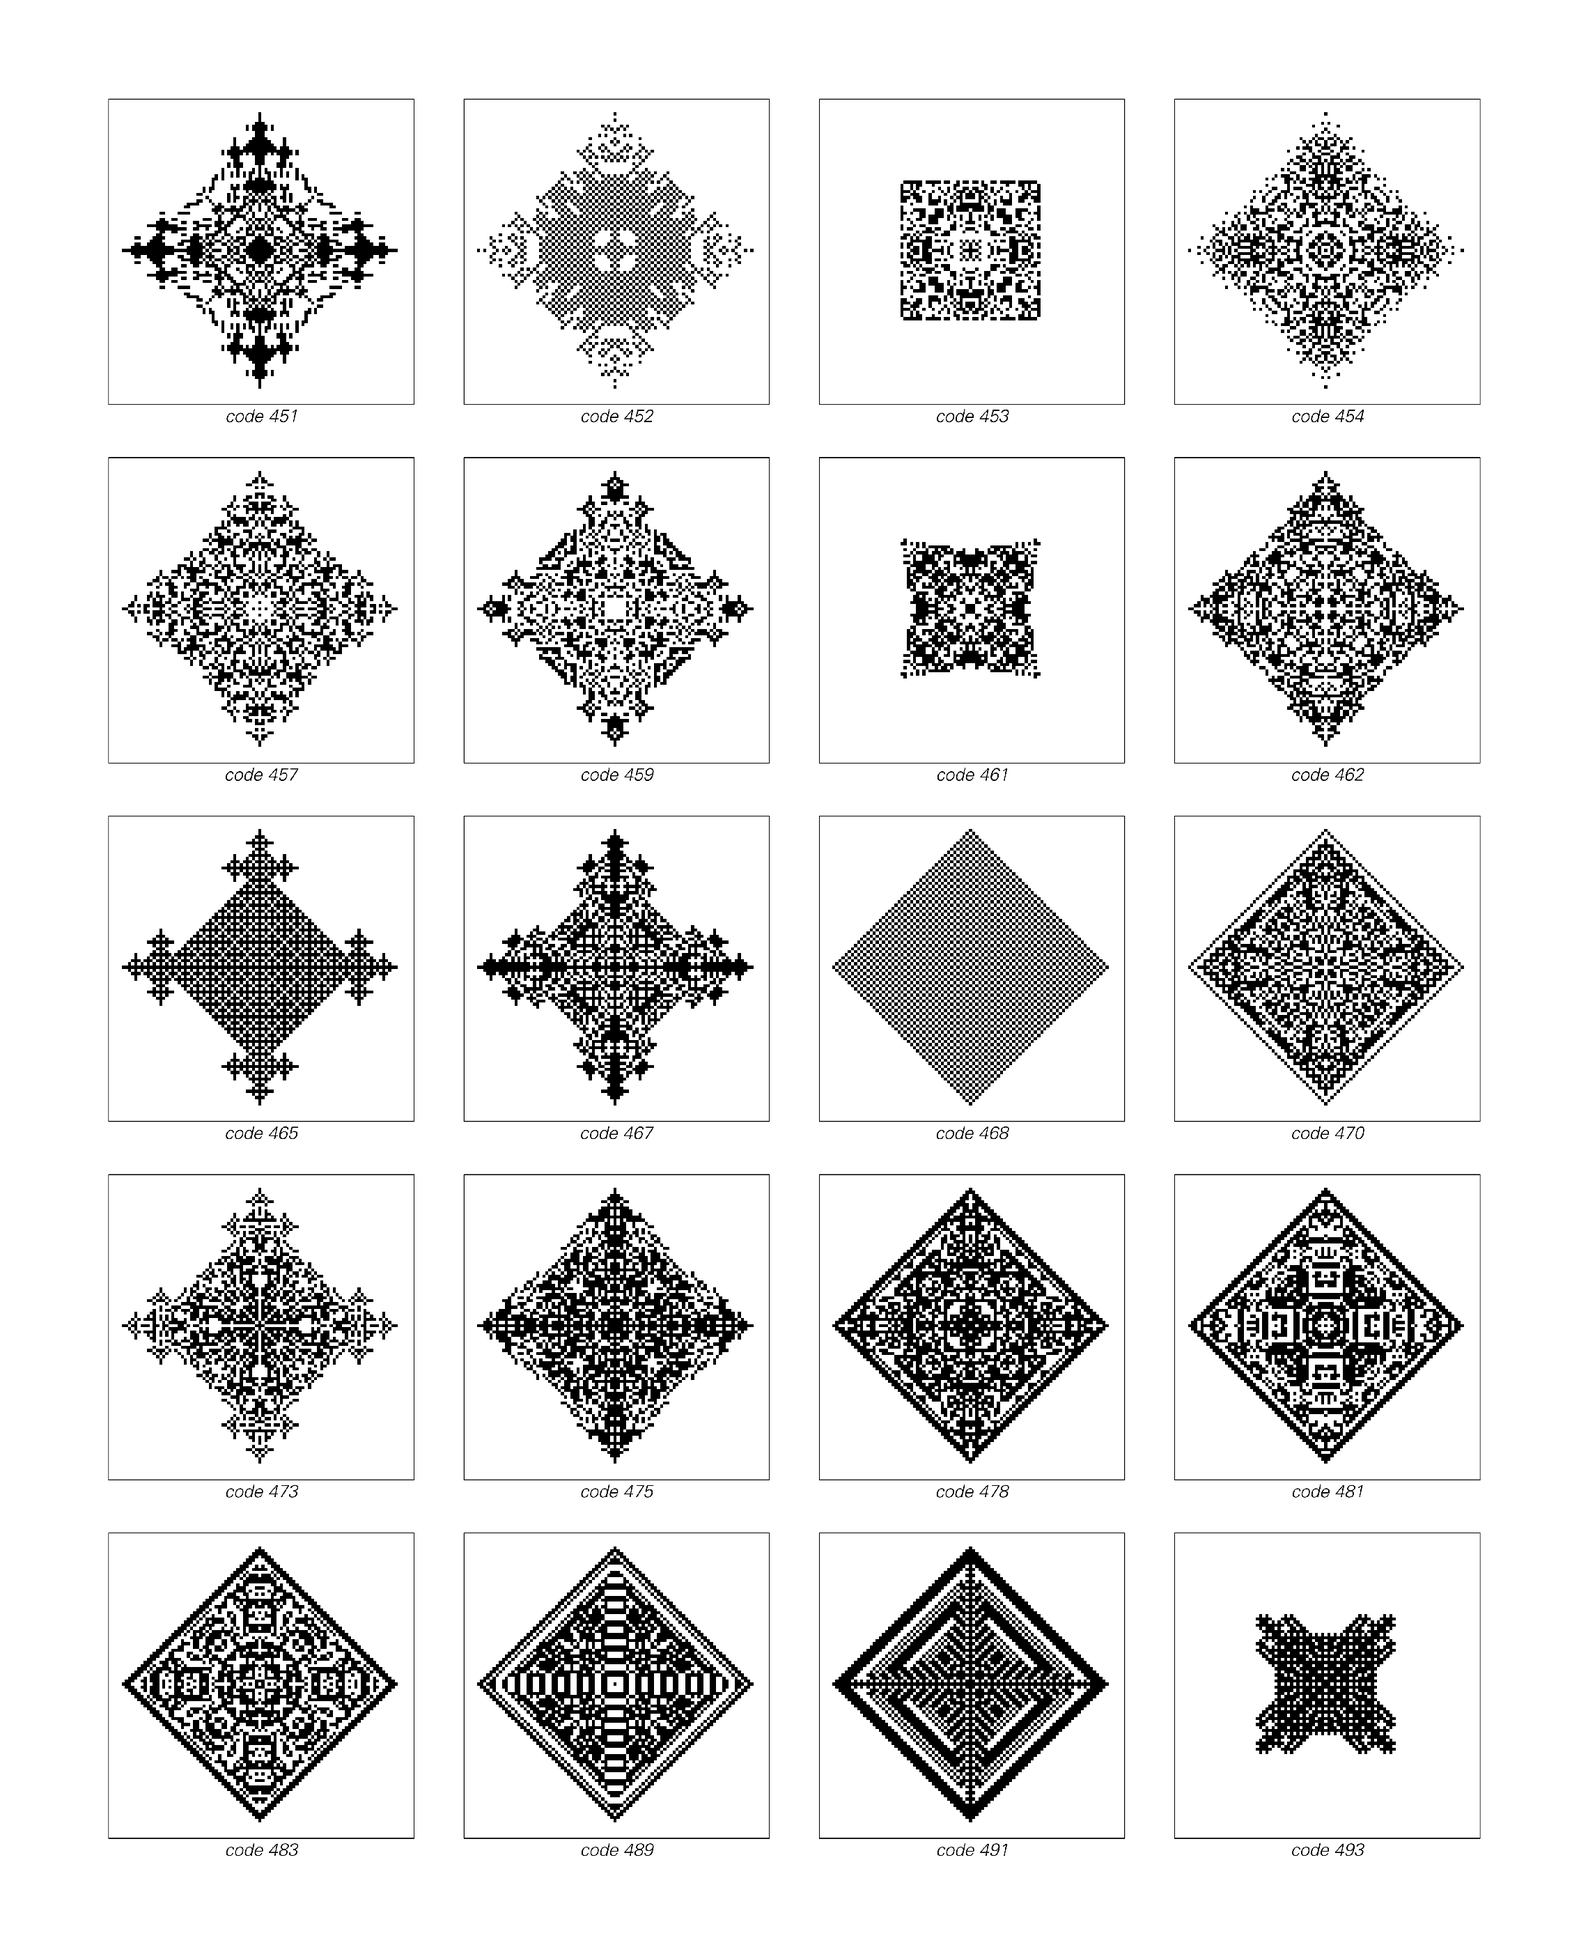 Patterns generated by two-dimensional cellular automata